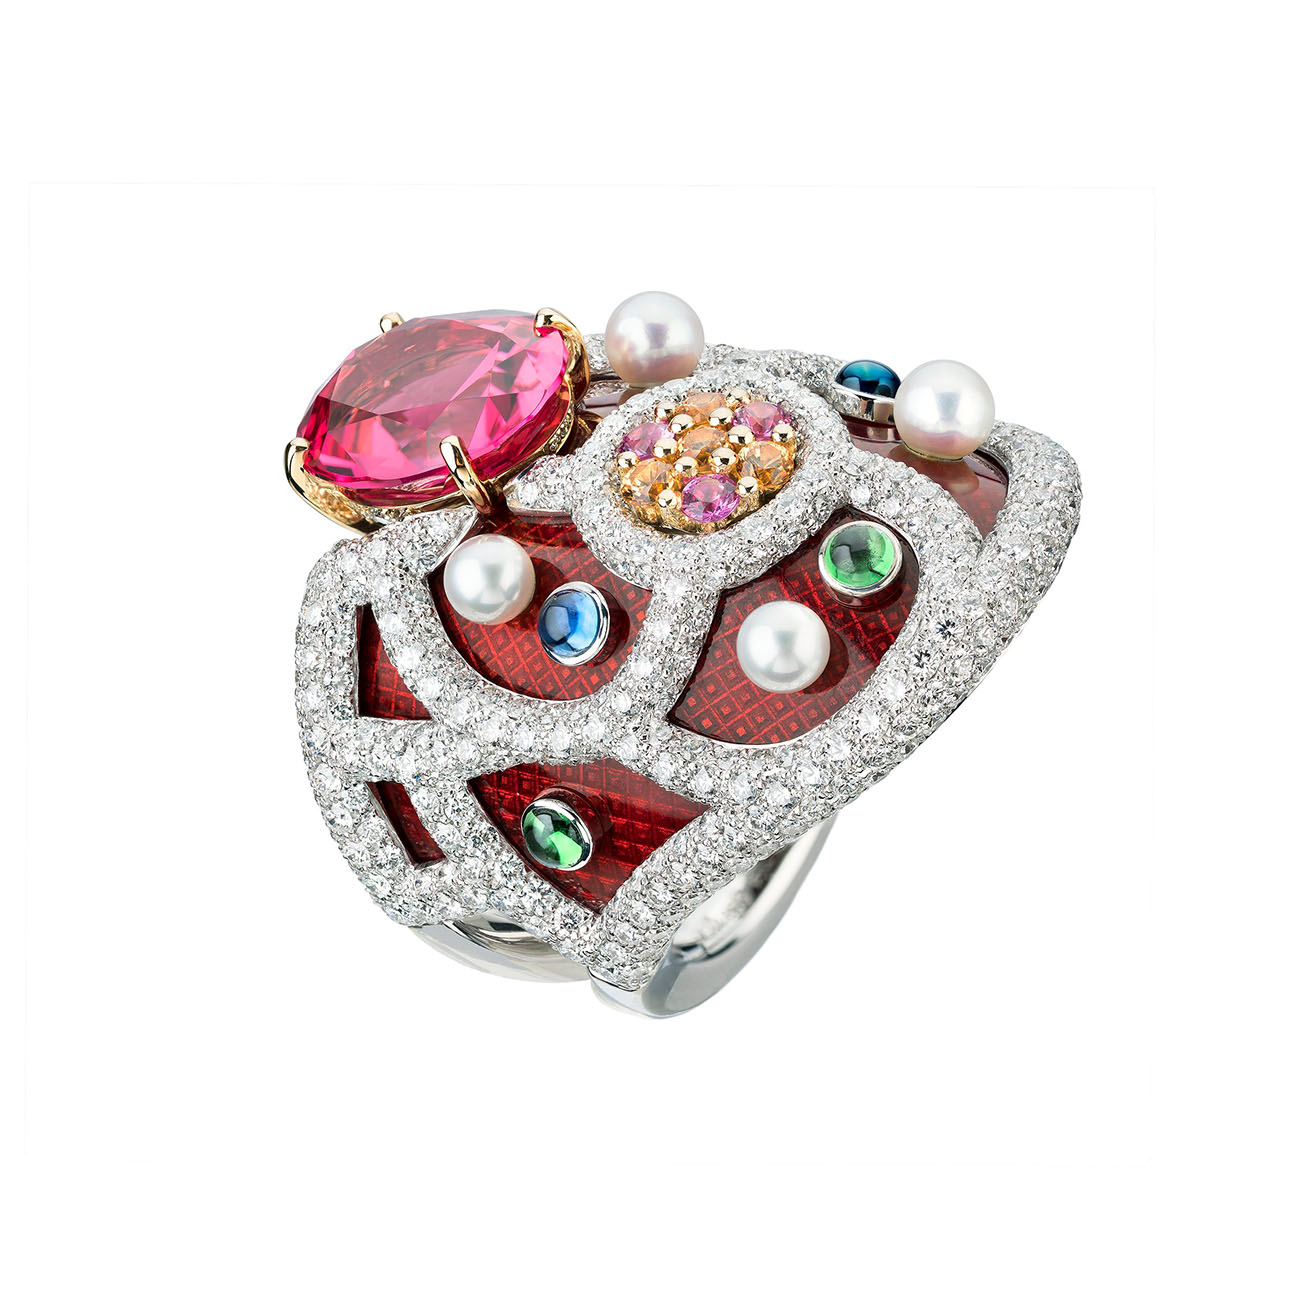 Chanel High Jewelry Collection LE PARIS RUSSE DE CHANEL Folklore Ring 2